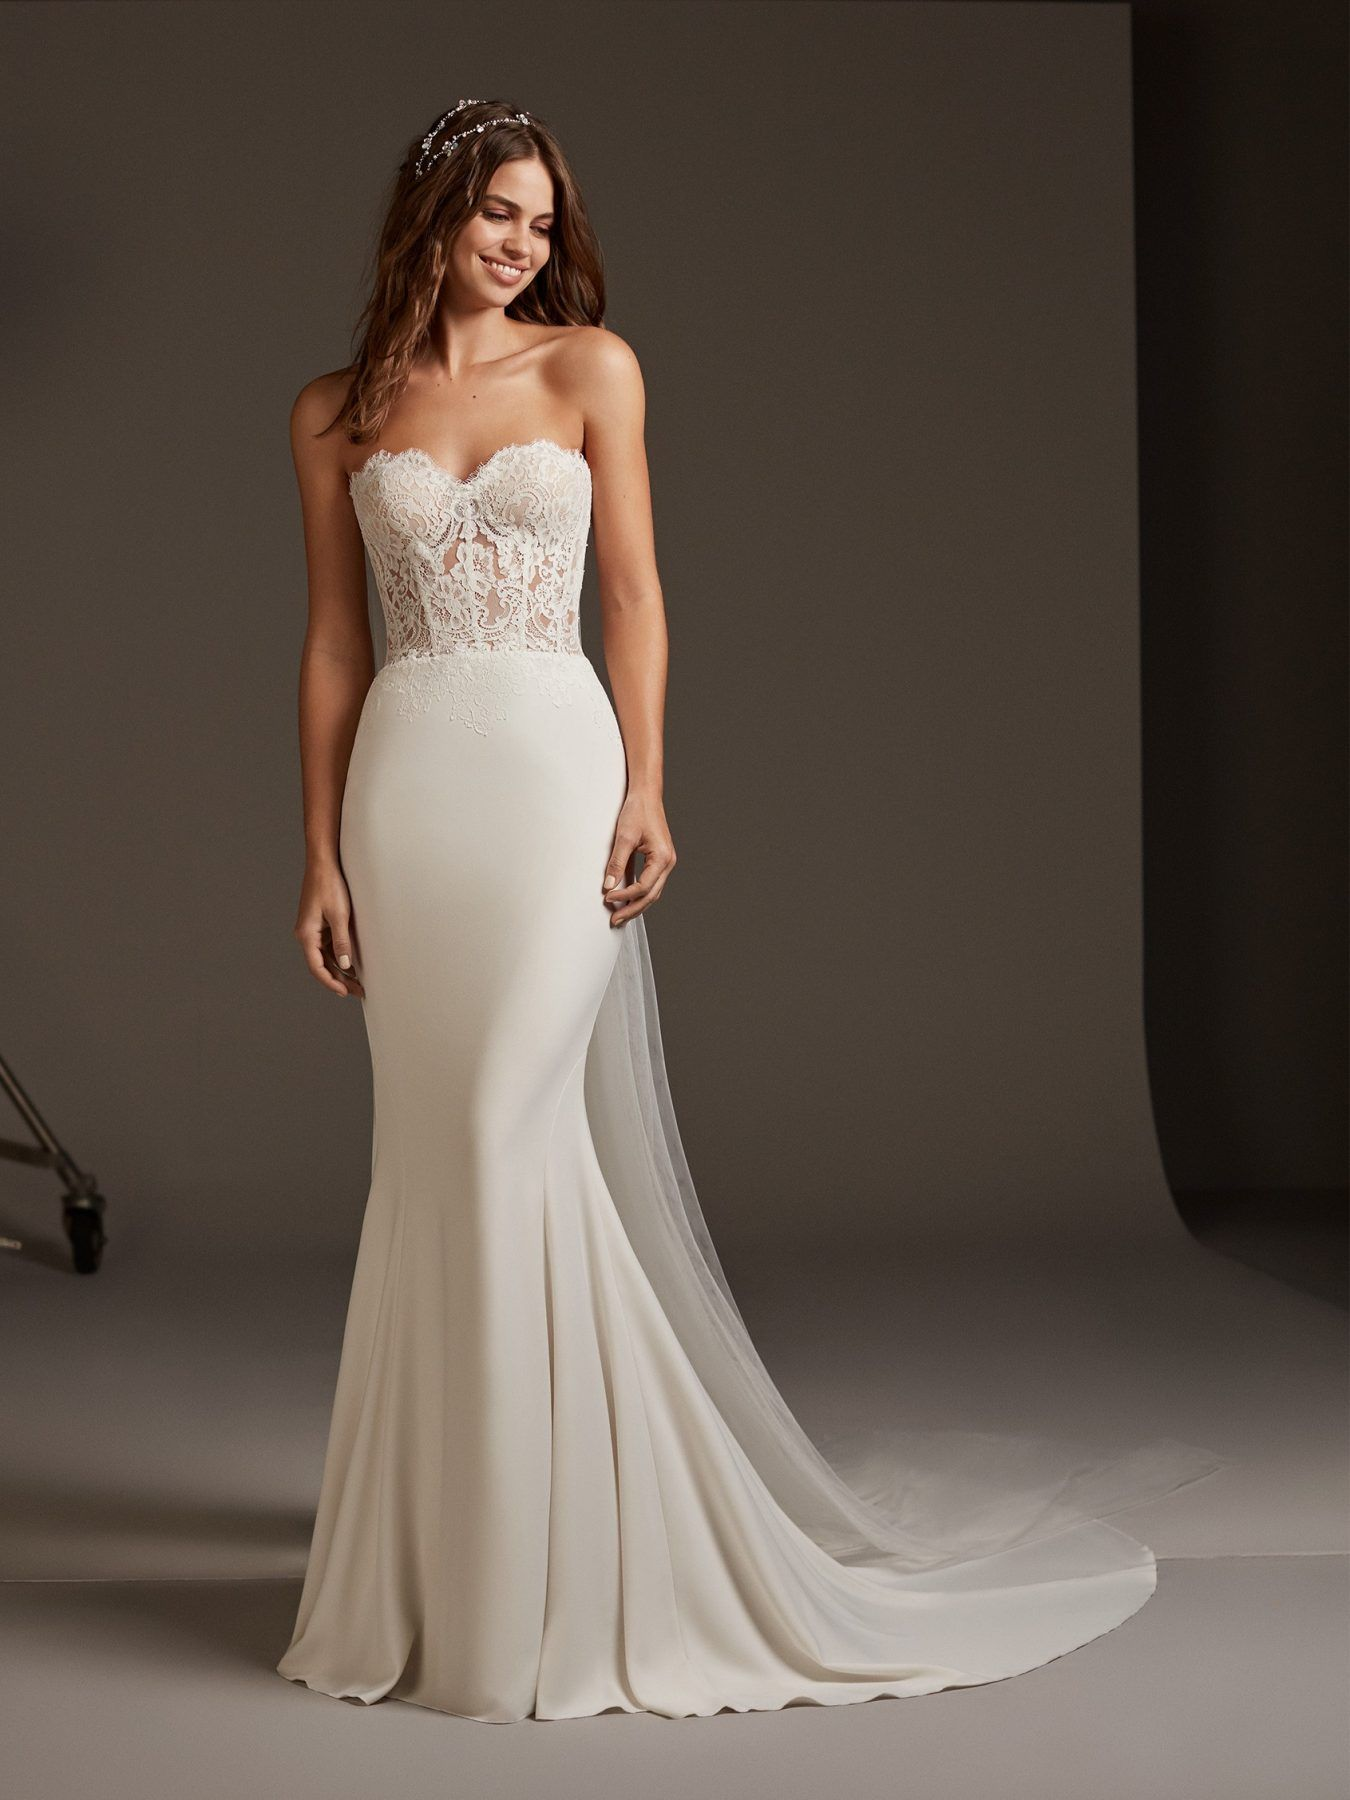 See Through Bodice Is Gorg In 2020 Corset Mermaid Wedding Dress Pronovias Wedding Dress Mermaid Dresses